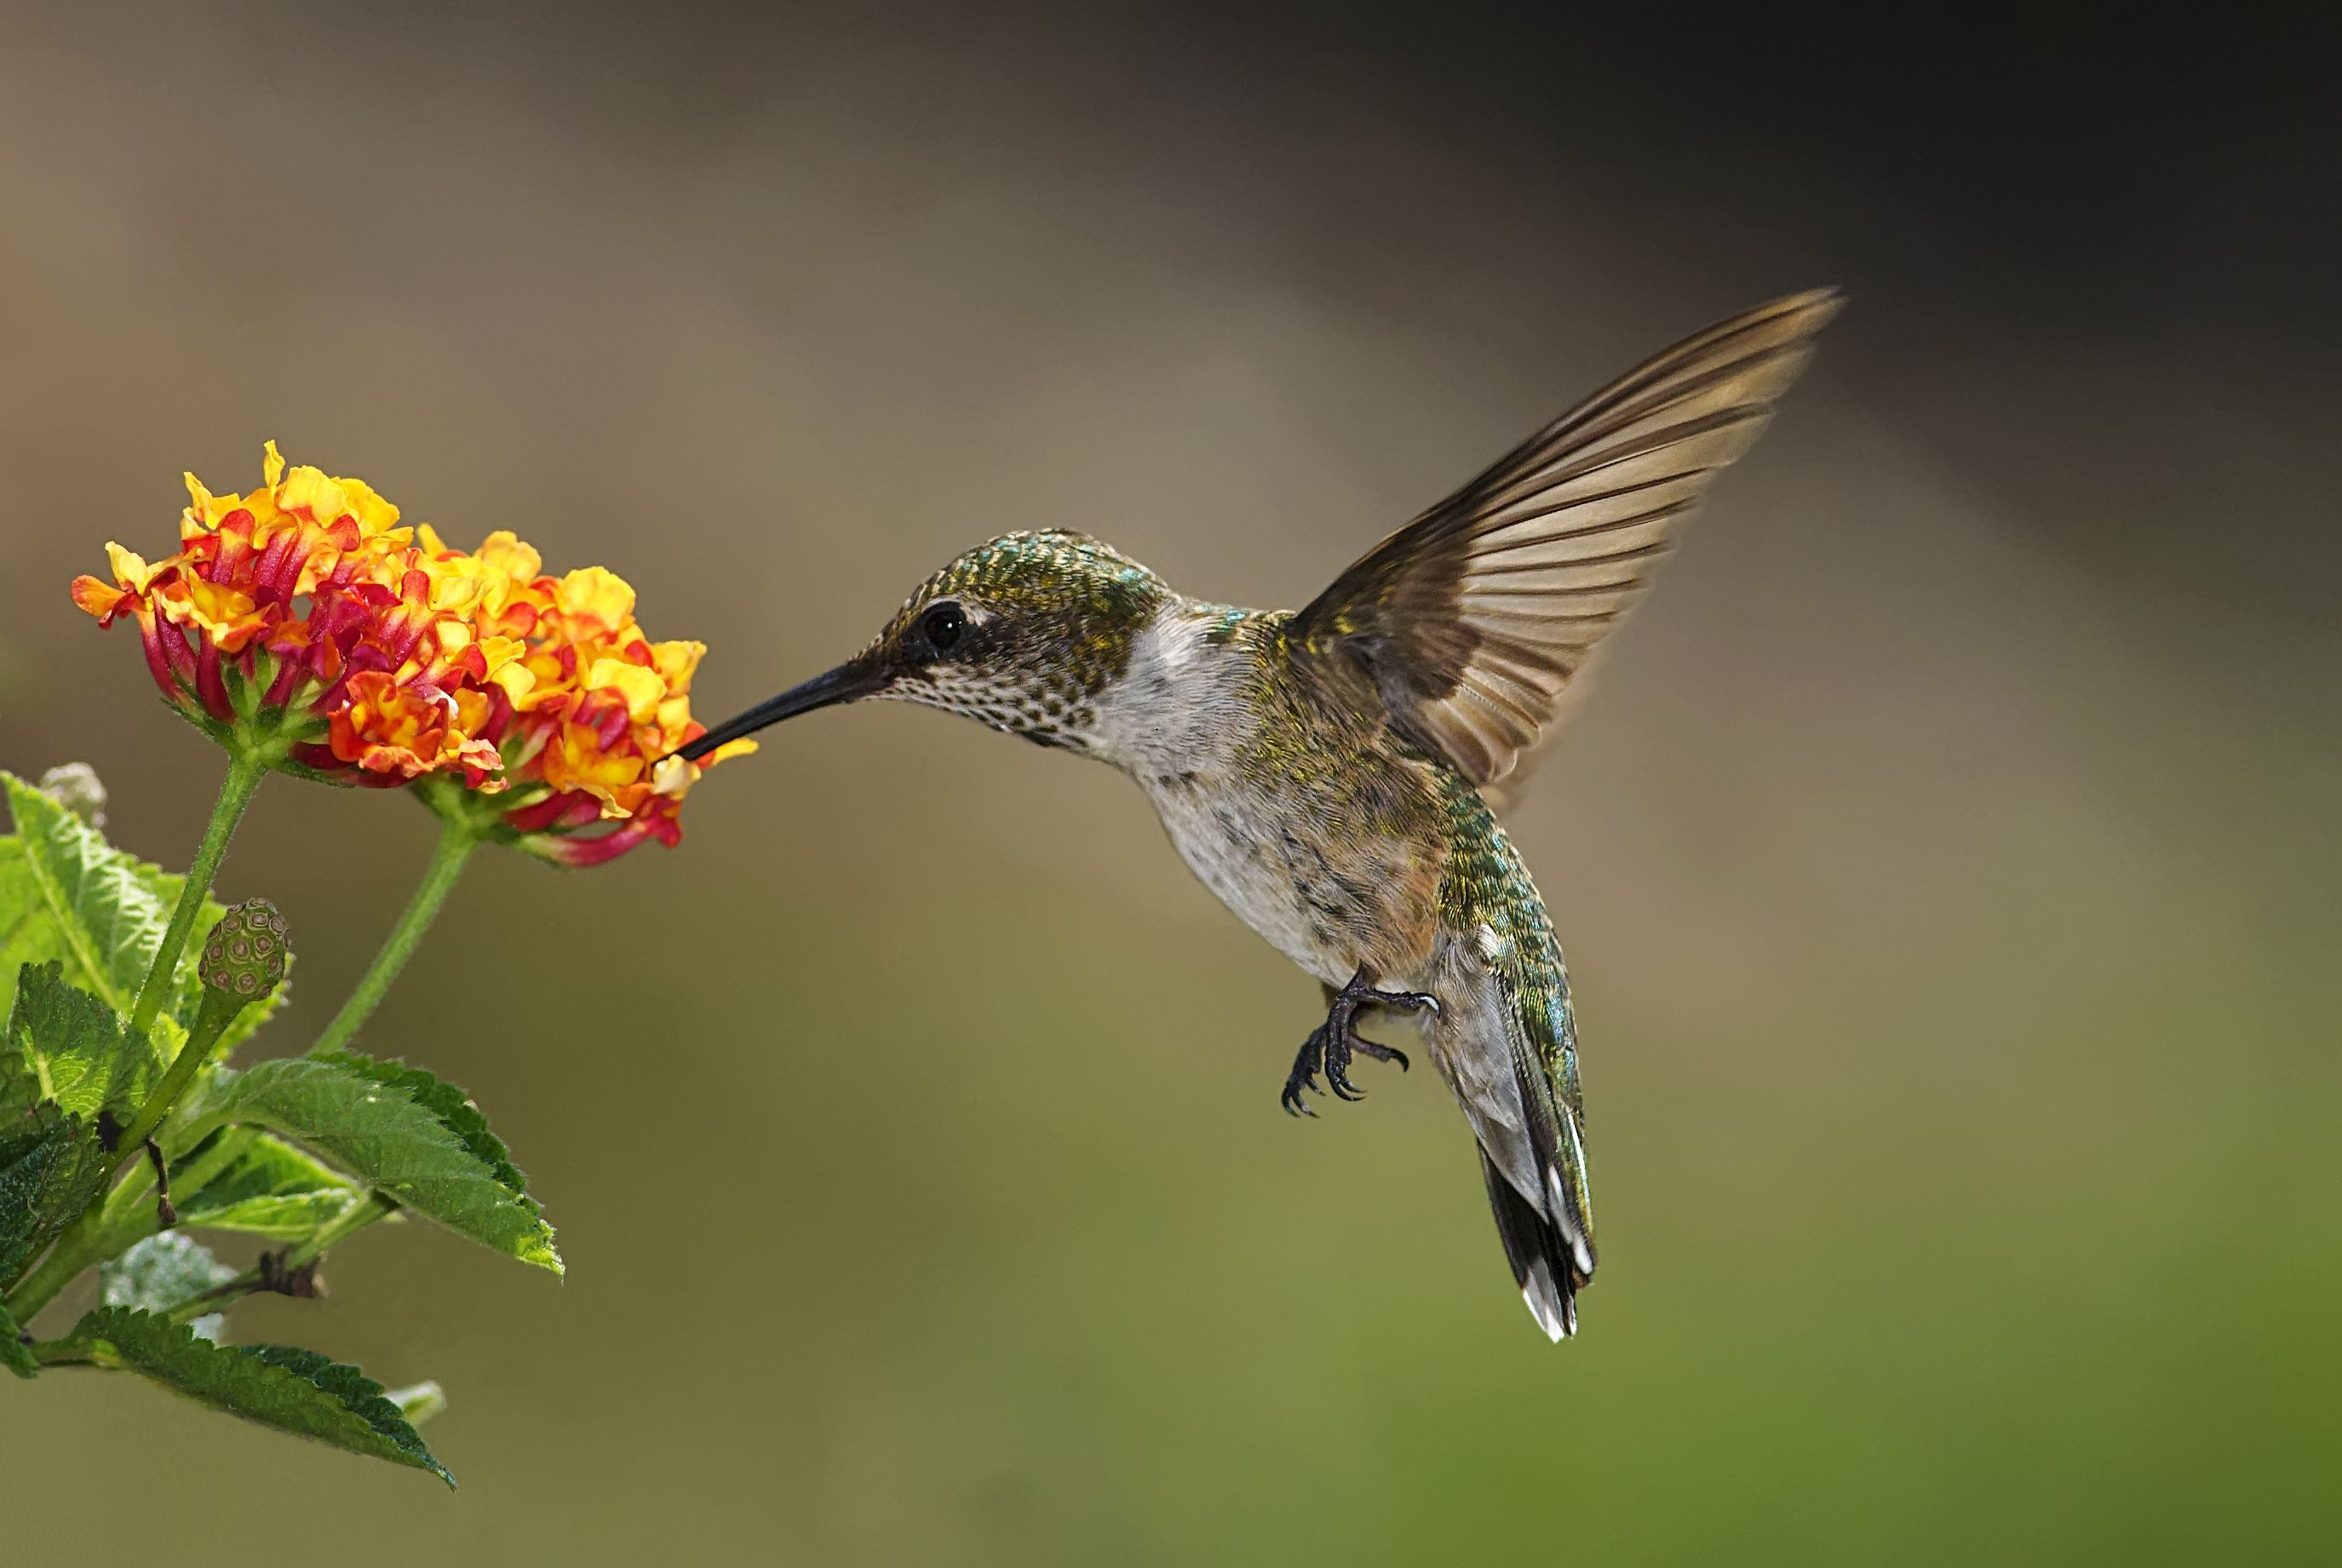 Flowers to Attract Hummingbirds: Best Choices